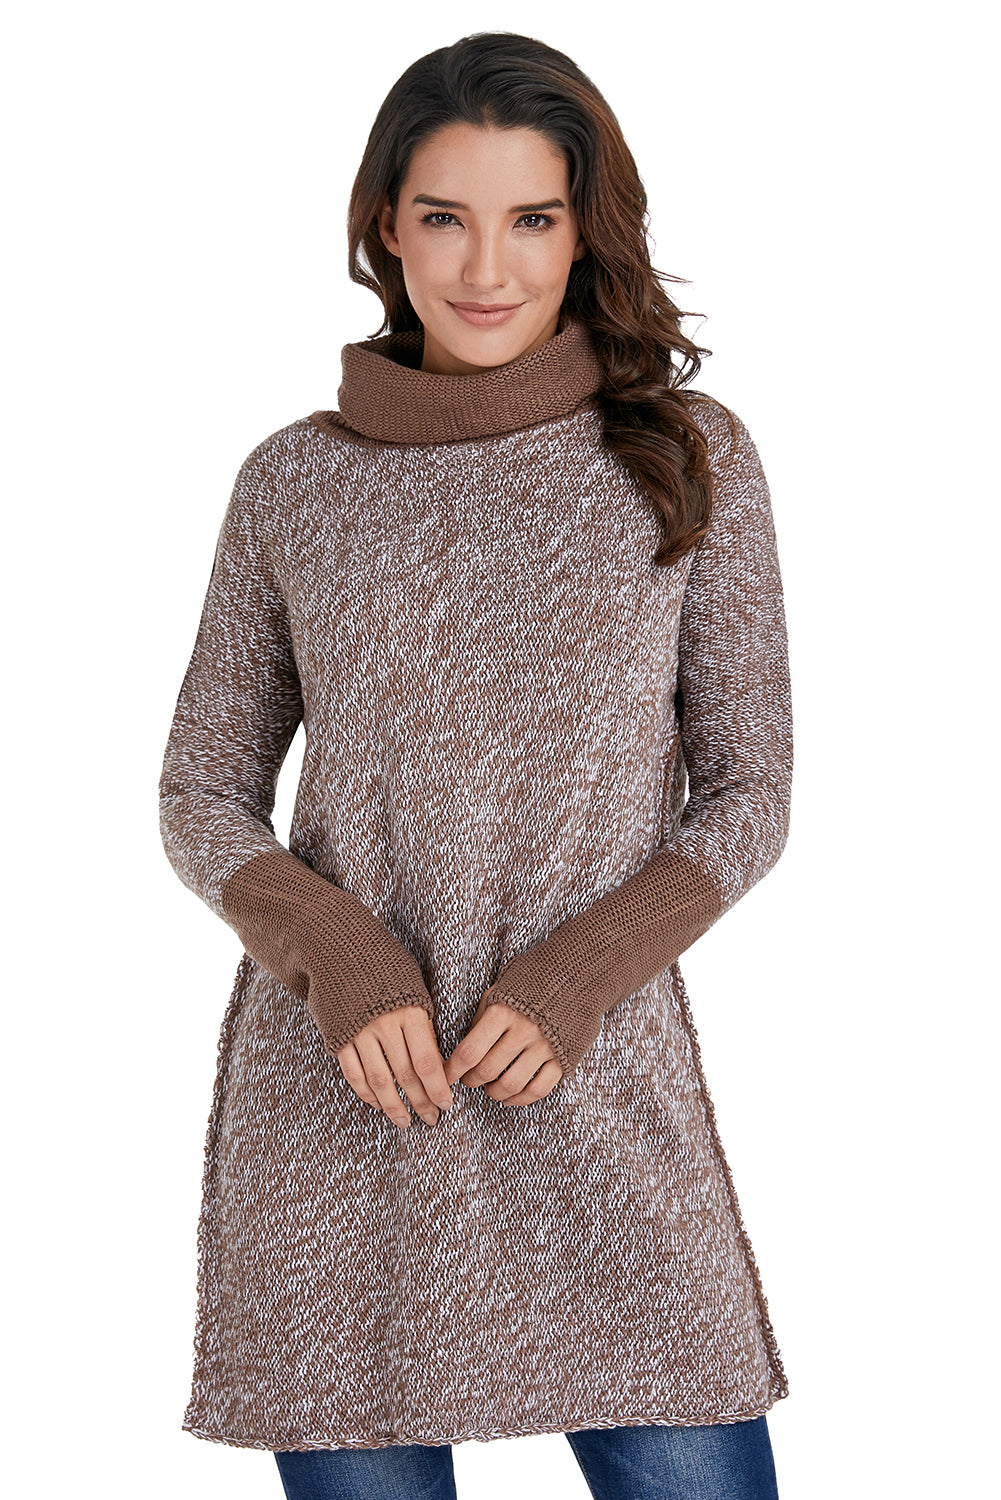 Brown High Collar Long Sleeve Knitted Stitching Sweater